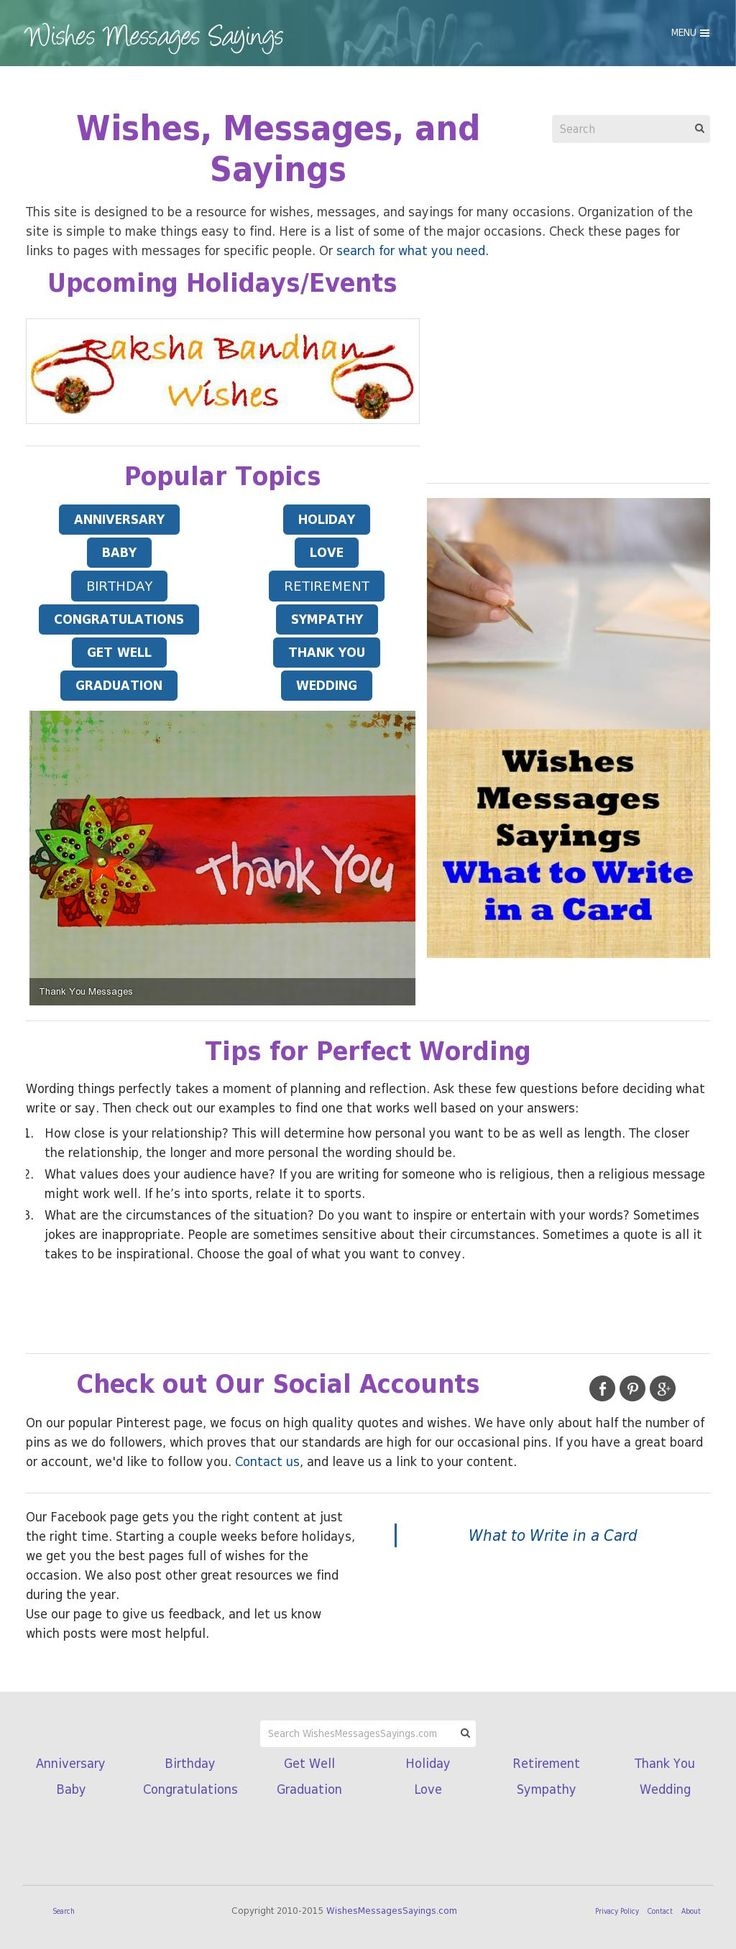 how to write a welcome message for a website